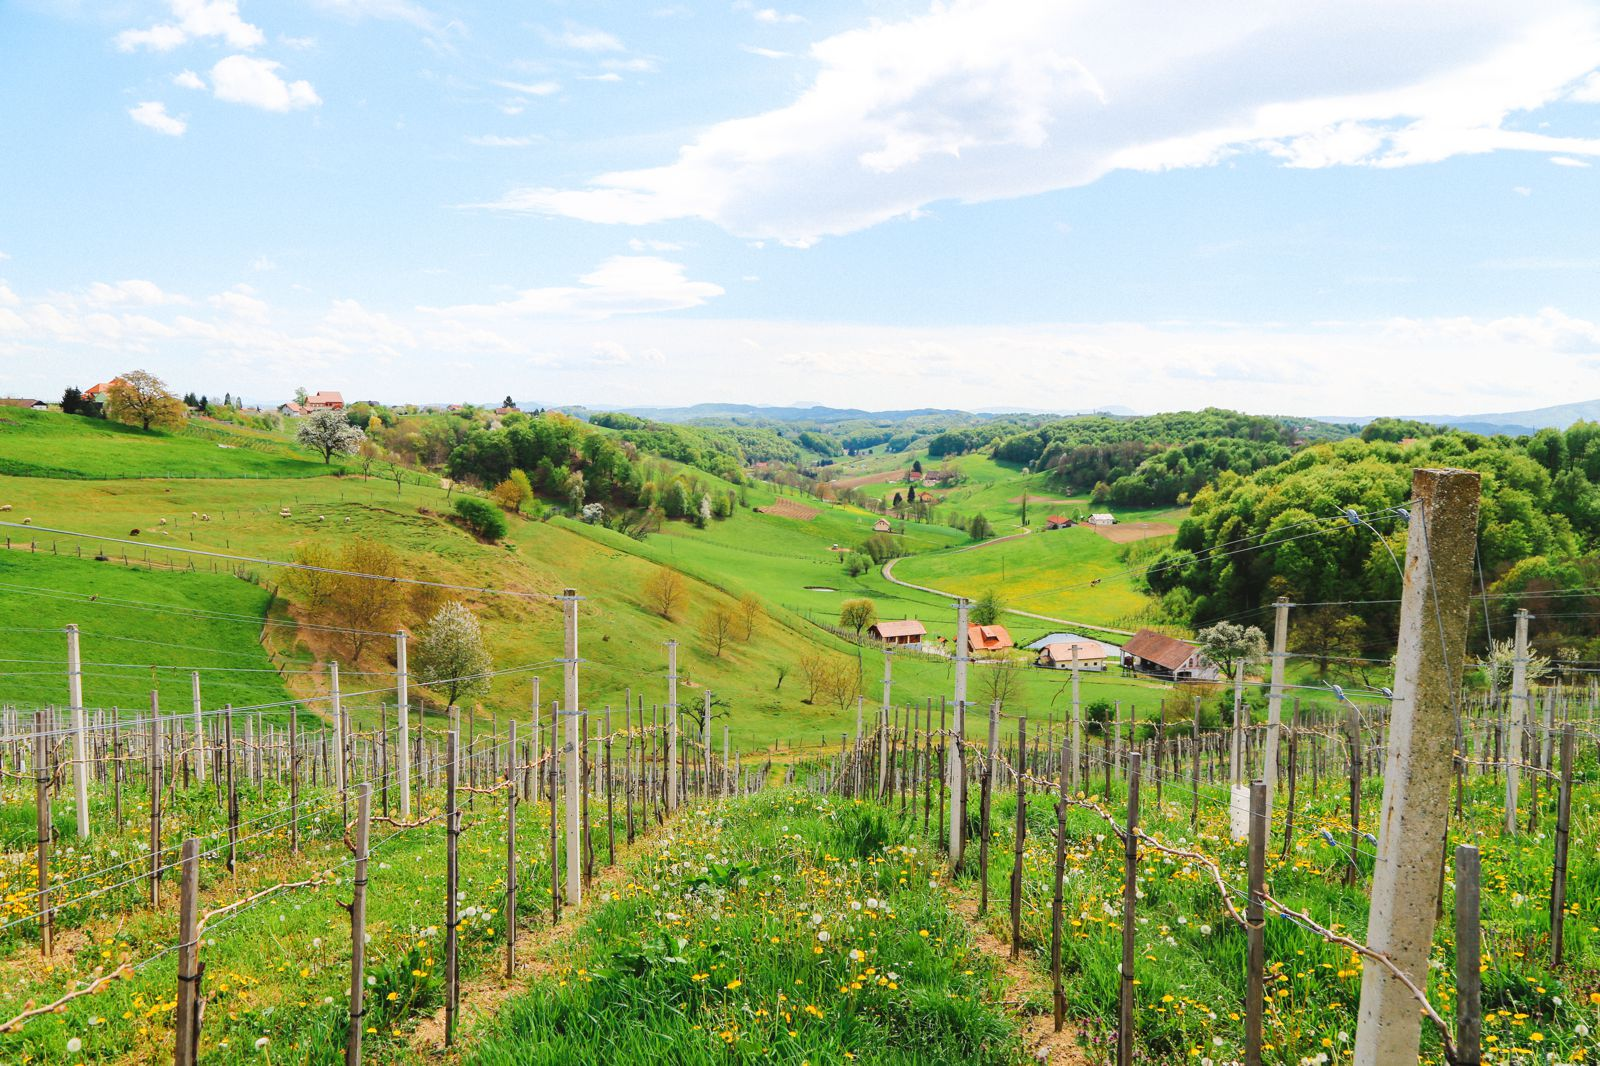 Vineyards, Charcuterie And The Old Historic City Of Maribor, Slovenia (1)